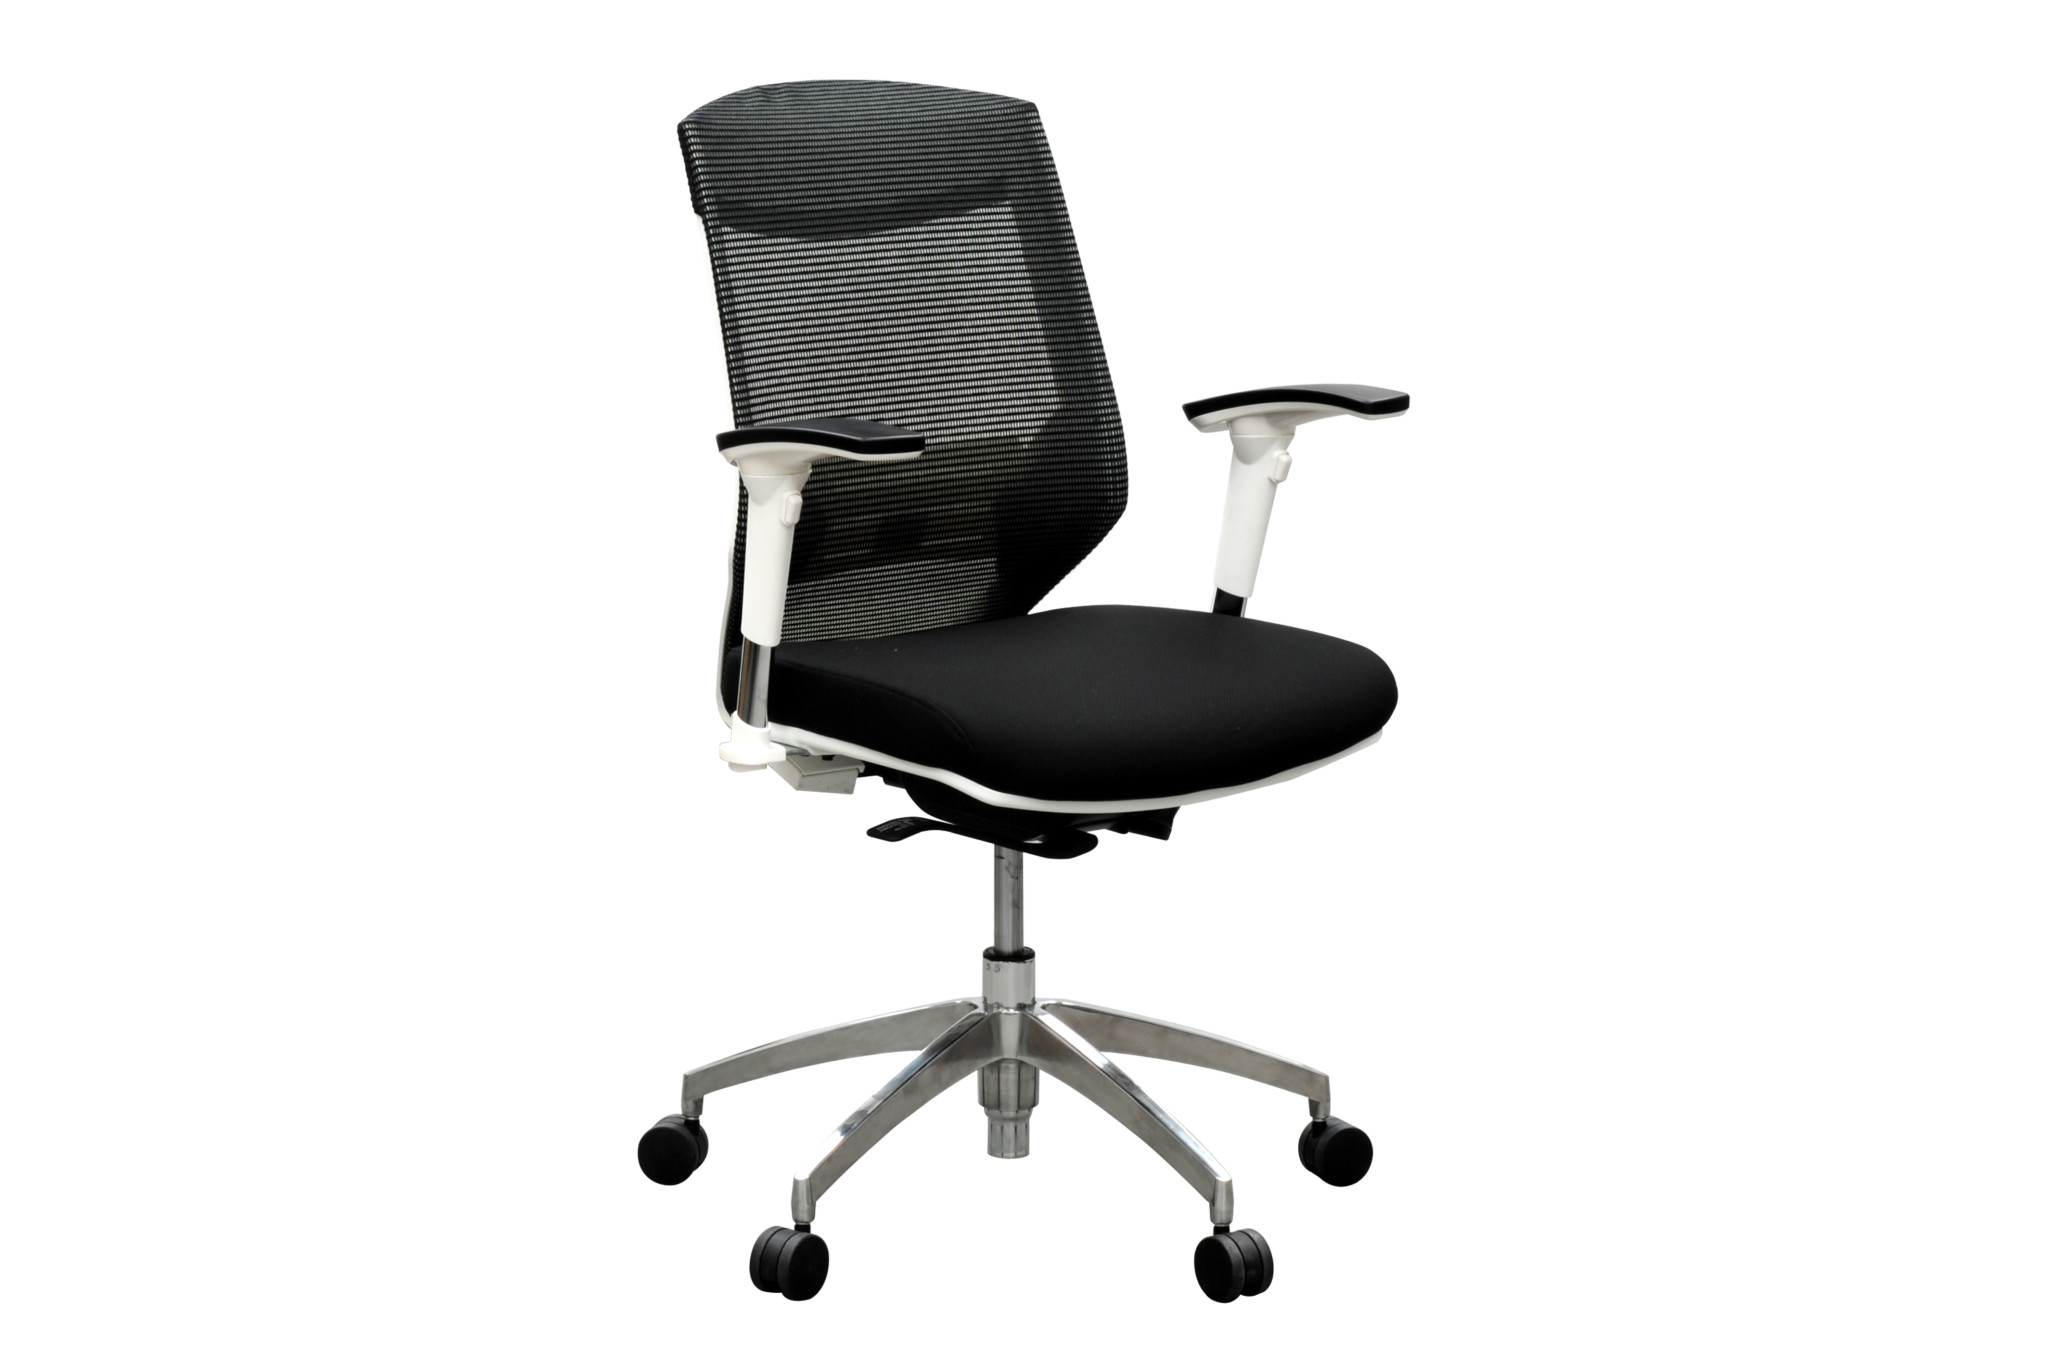 Vogue Ergonomic Mesh Office Chair